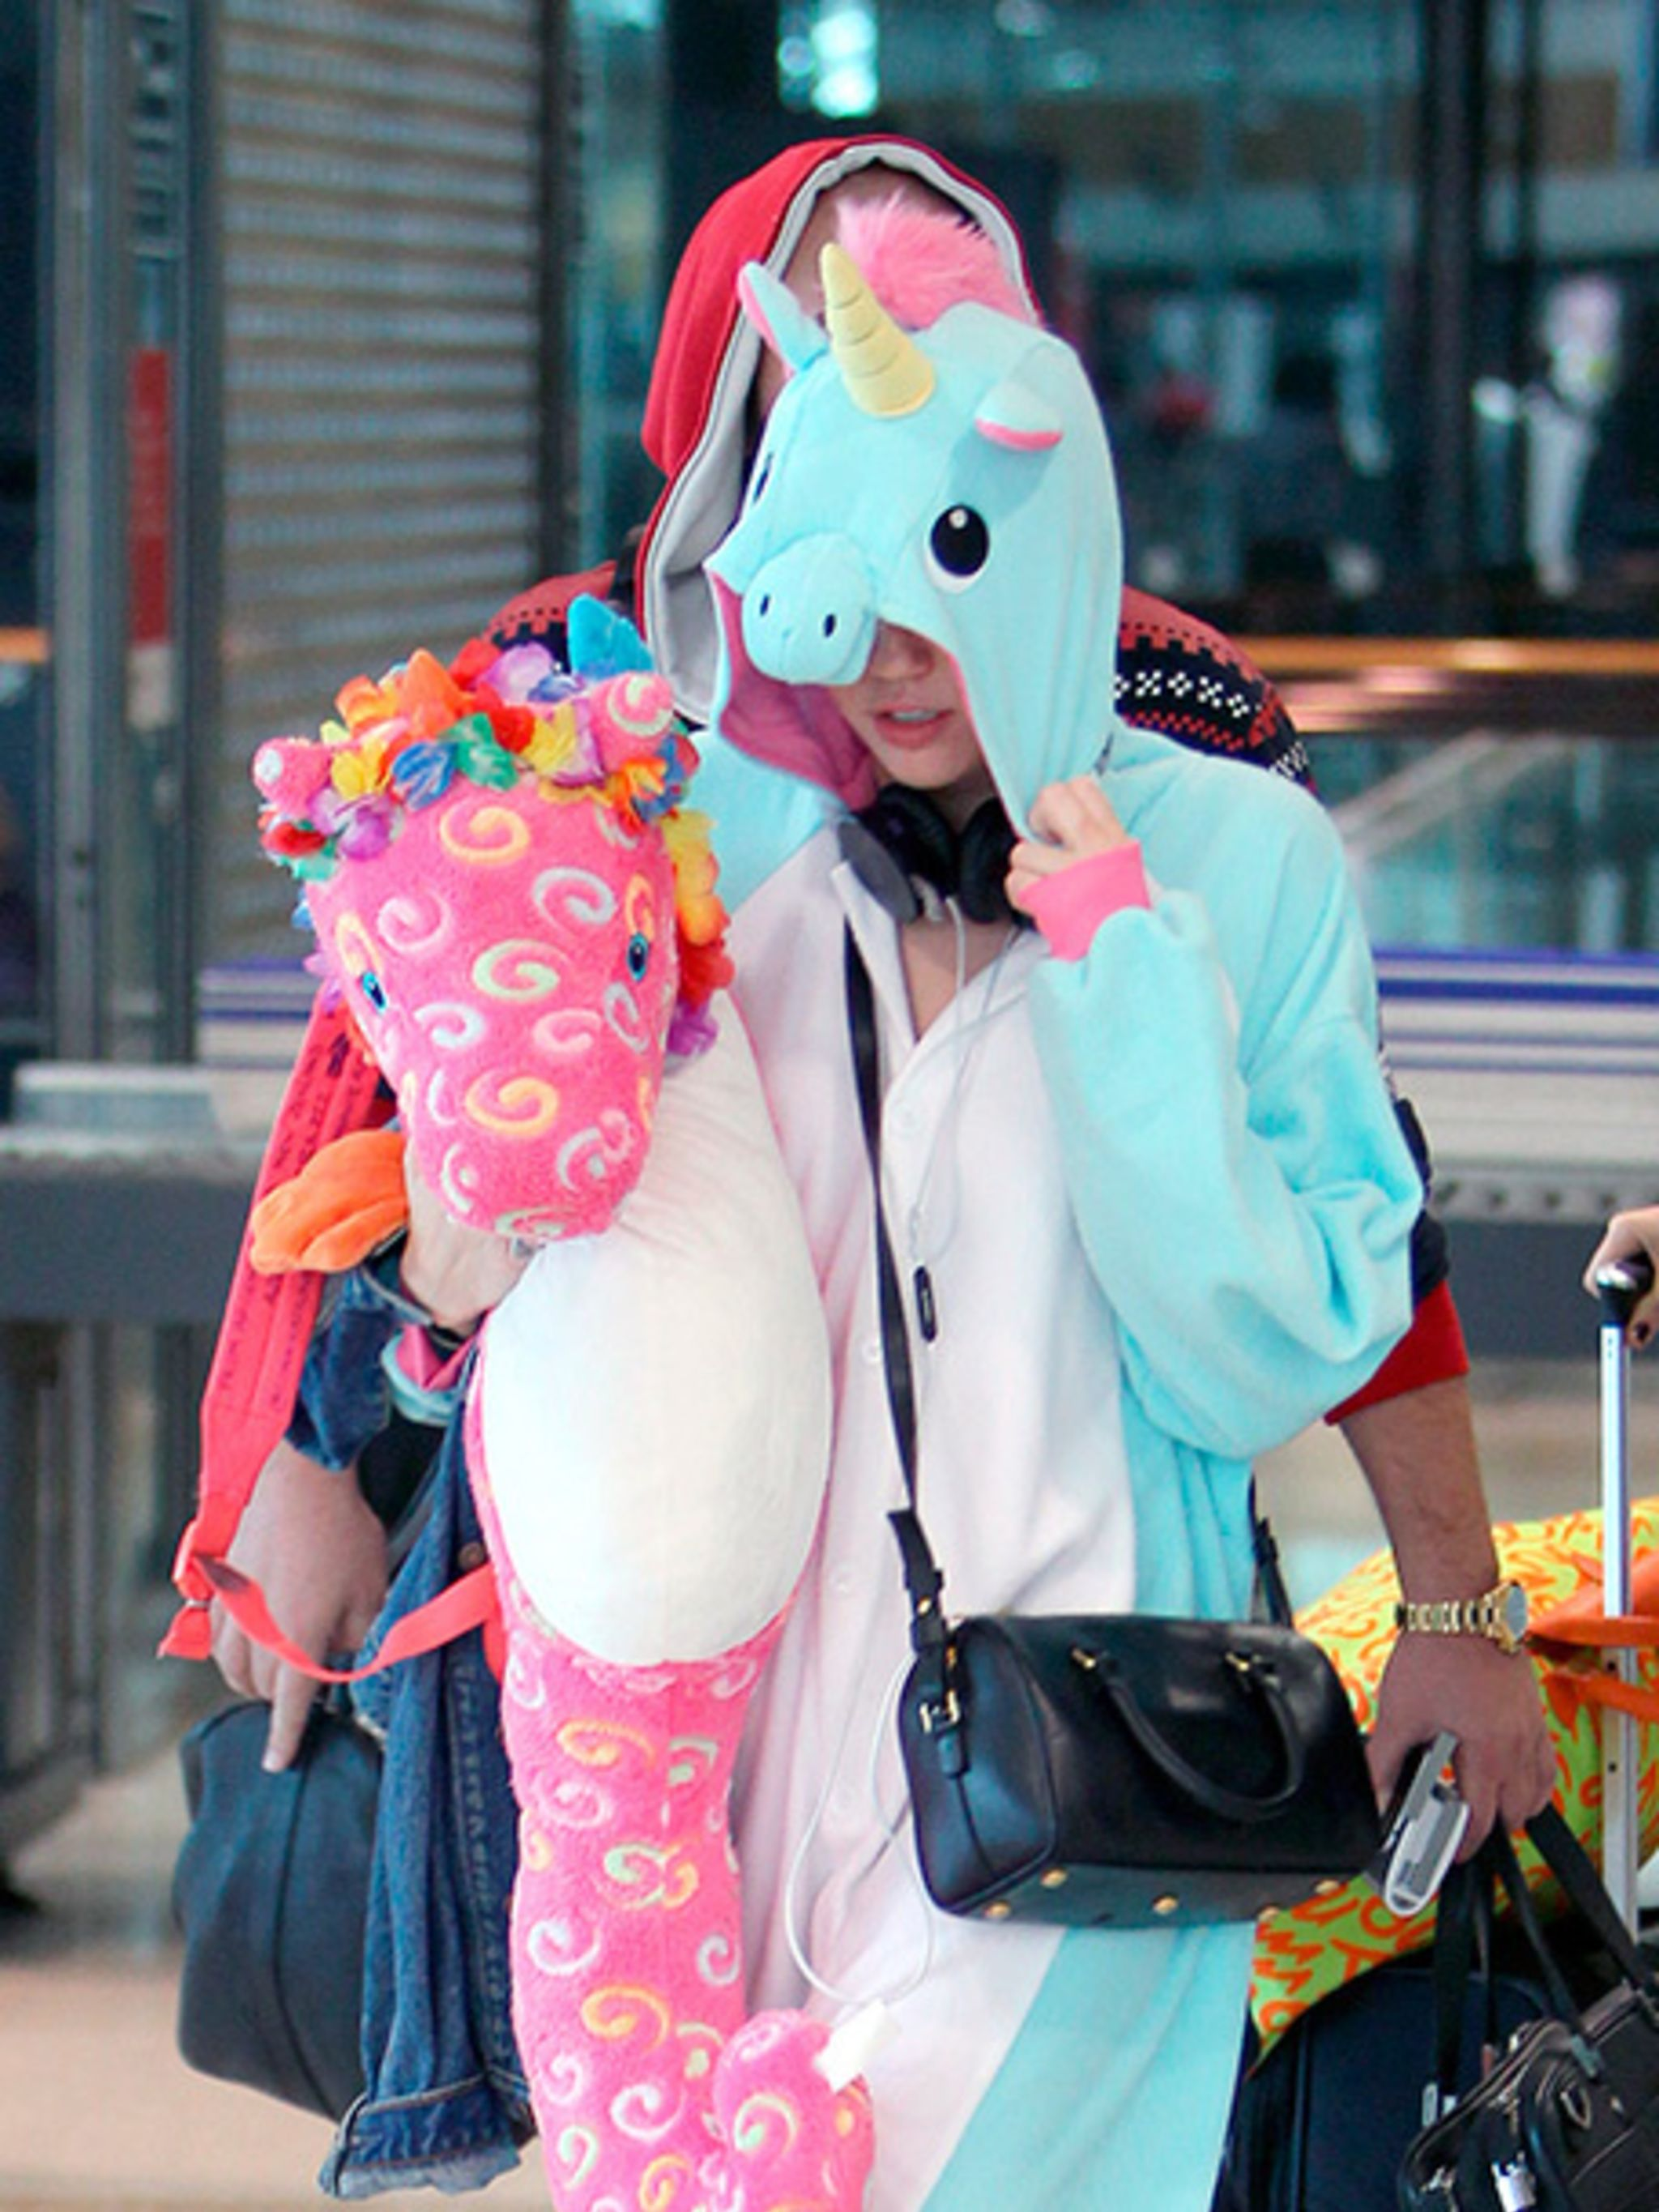 <p><strong>A unicorn onesie</strong></p>